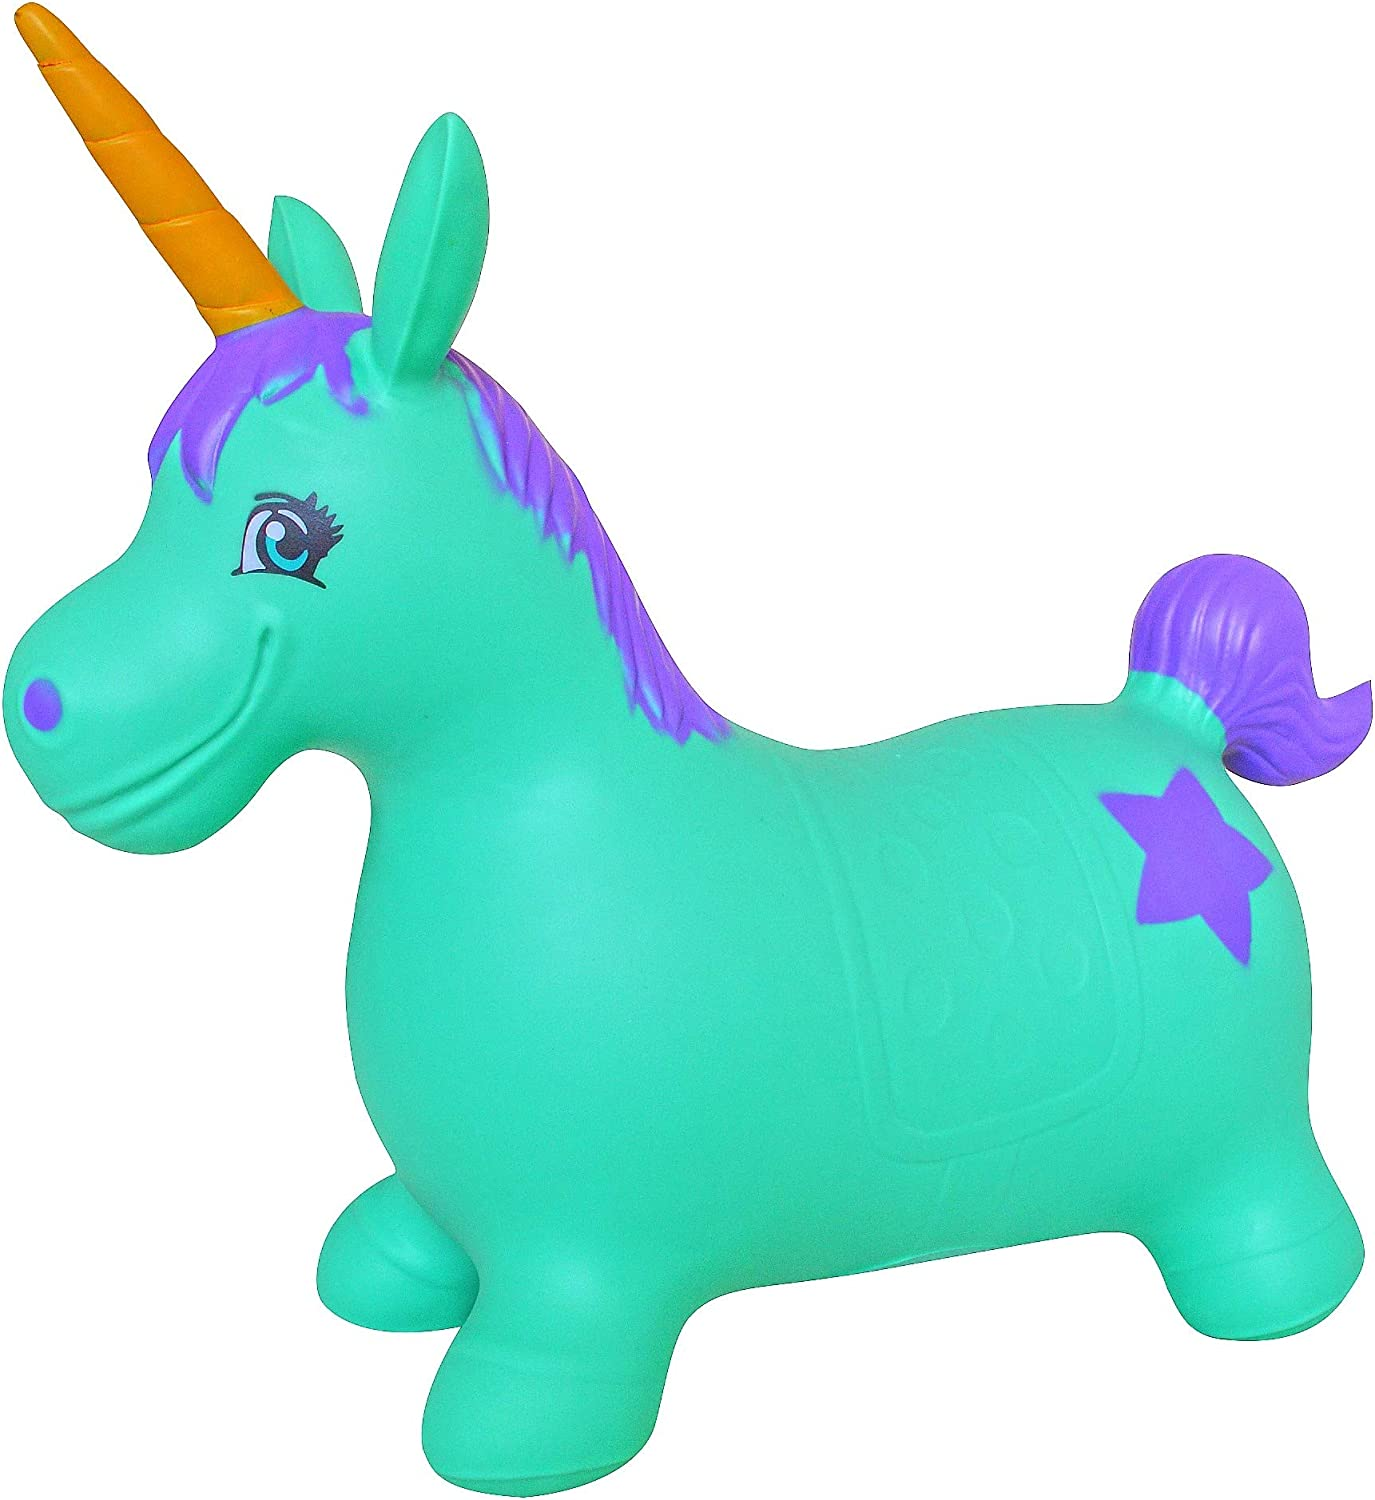 AppleRound Unicorn Bouncer with Hand Pump, Inflatable Space Hopper, Ride-on Bouncy Animal (Turquoise)